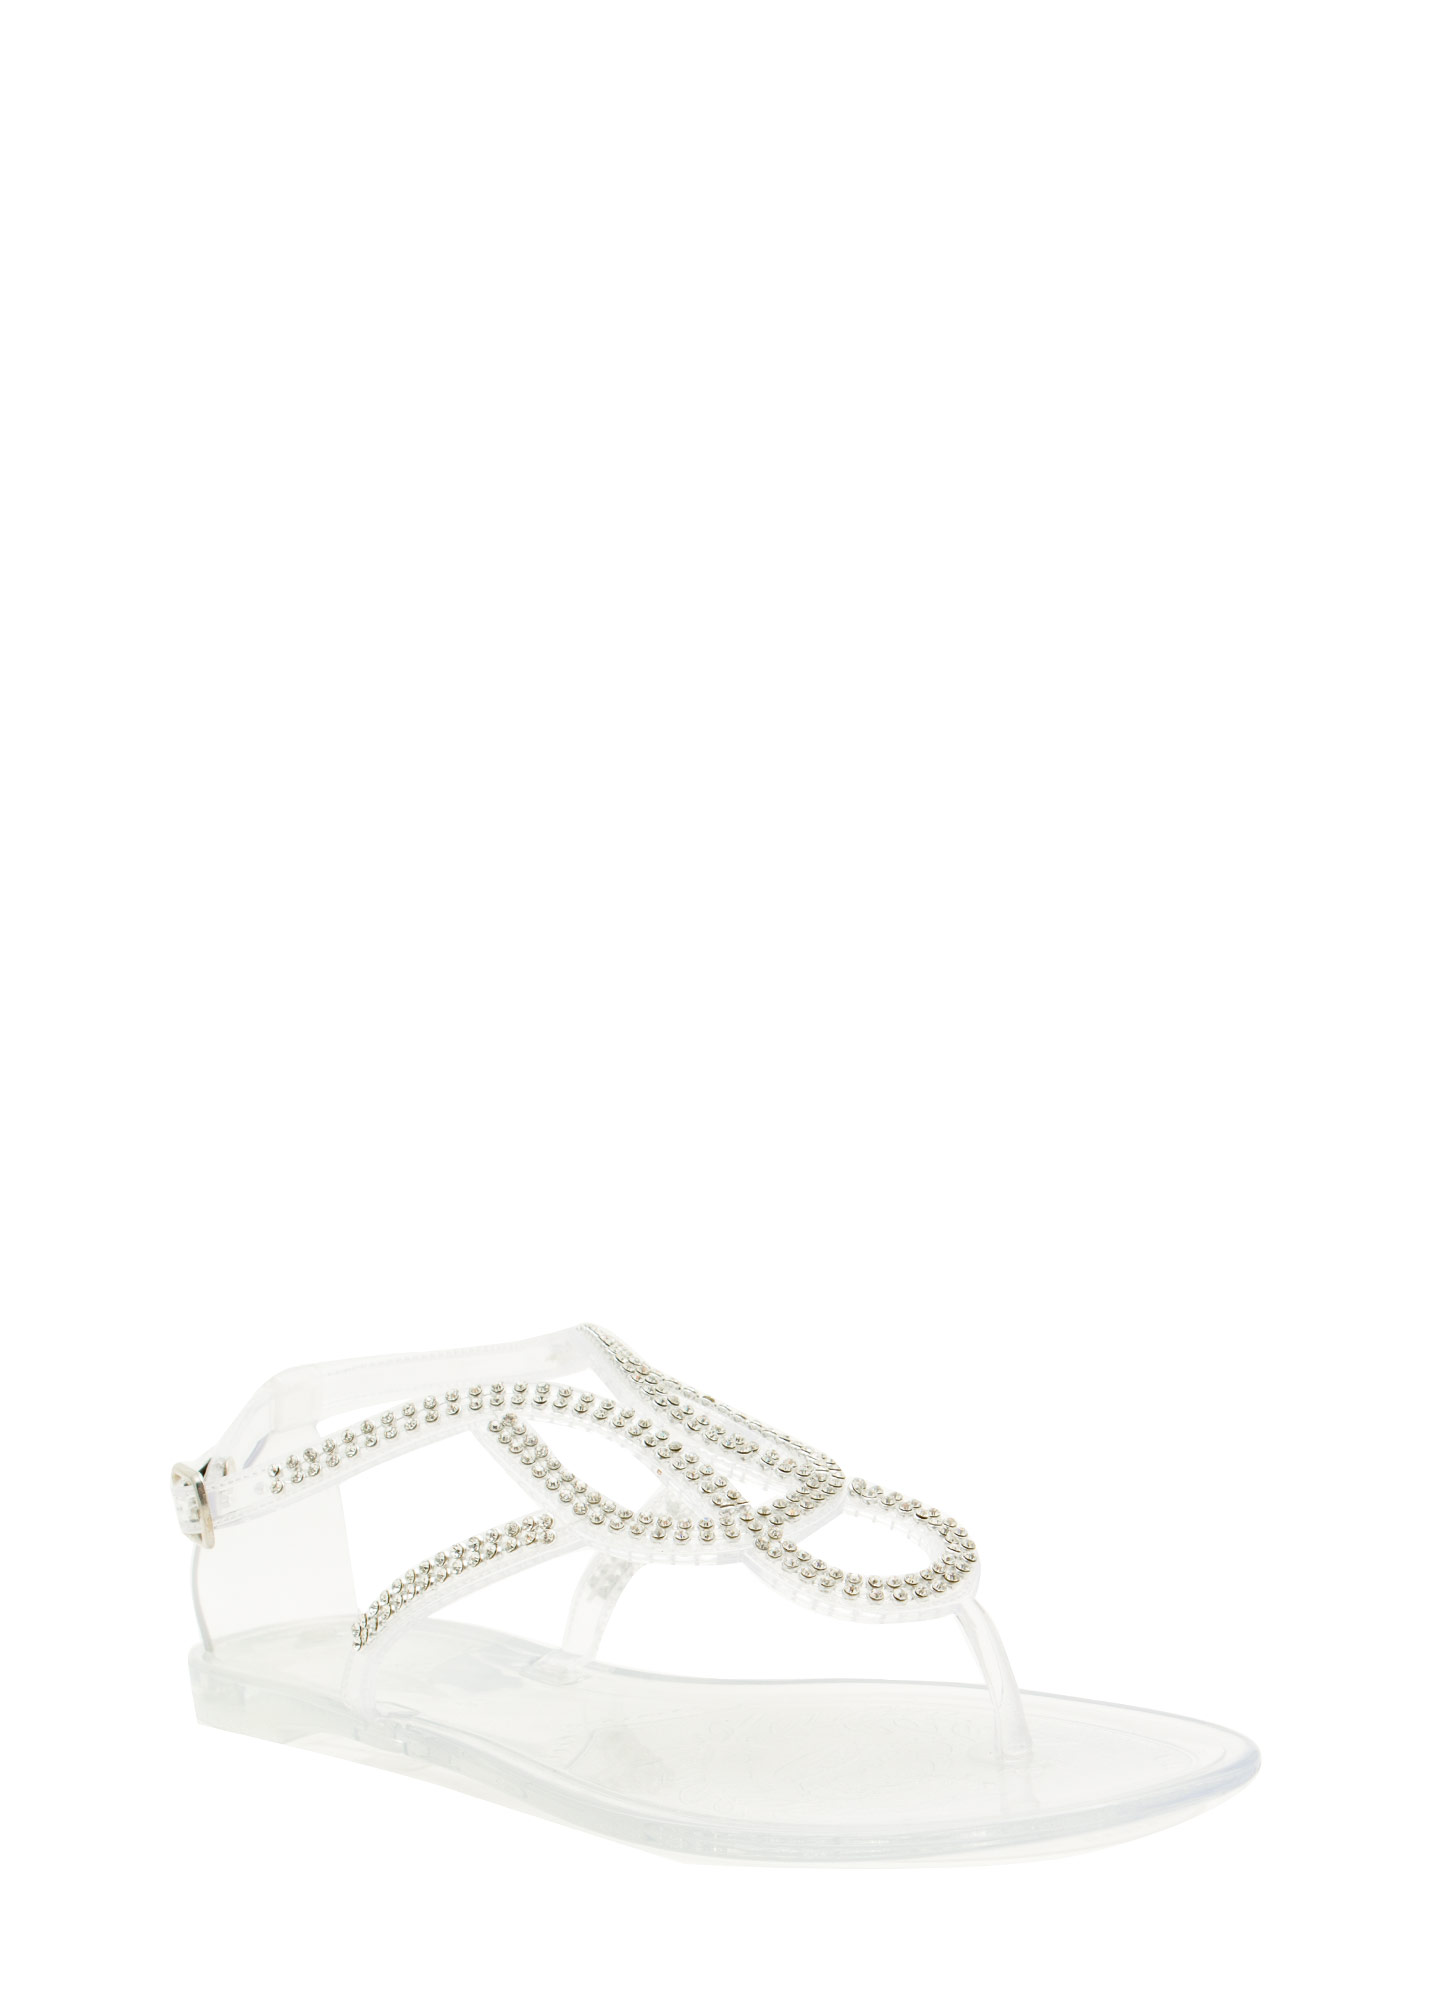 Grown Up Faux Jewel Jelly Sandals CLEAR